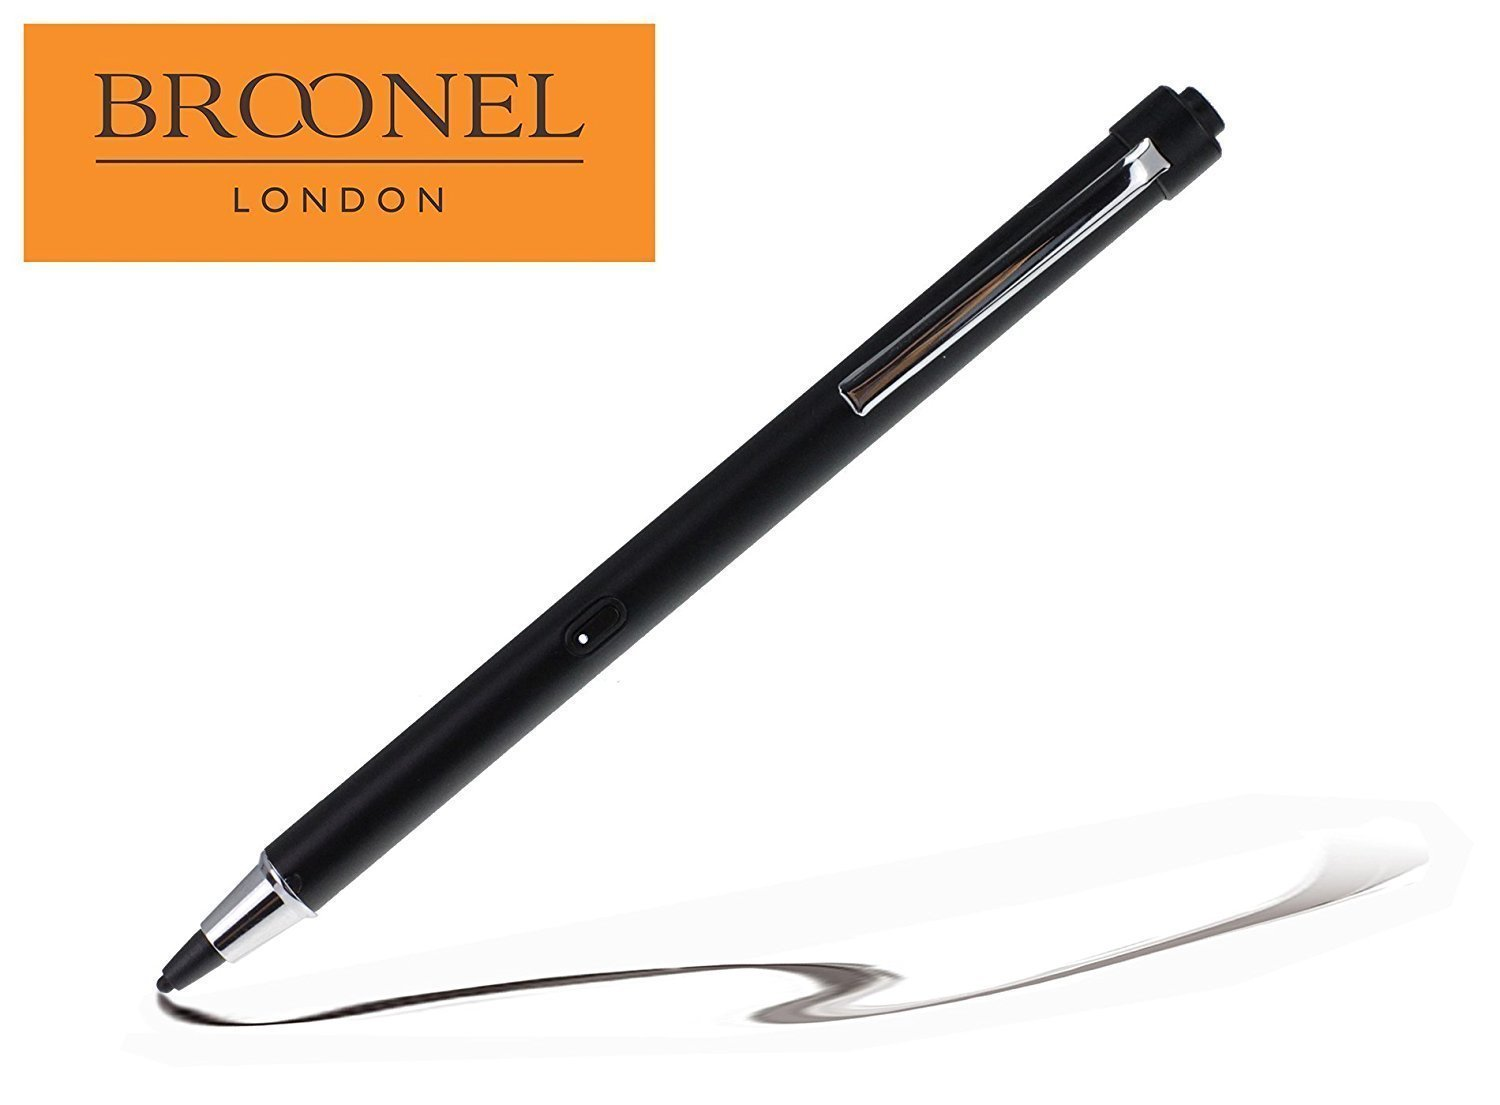 Broonel Midnight Black Rechargeable Fine Point Digital Stylus For The Samsung GalaxyNote 10.1